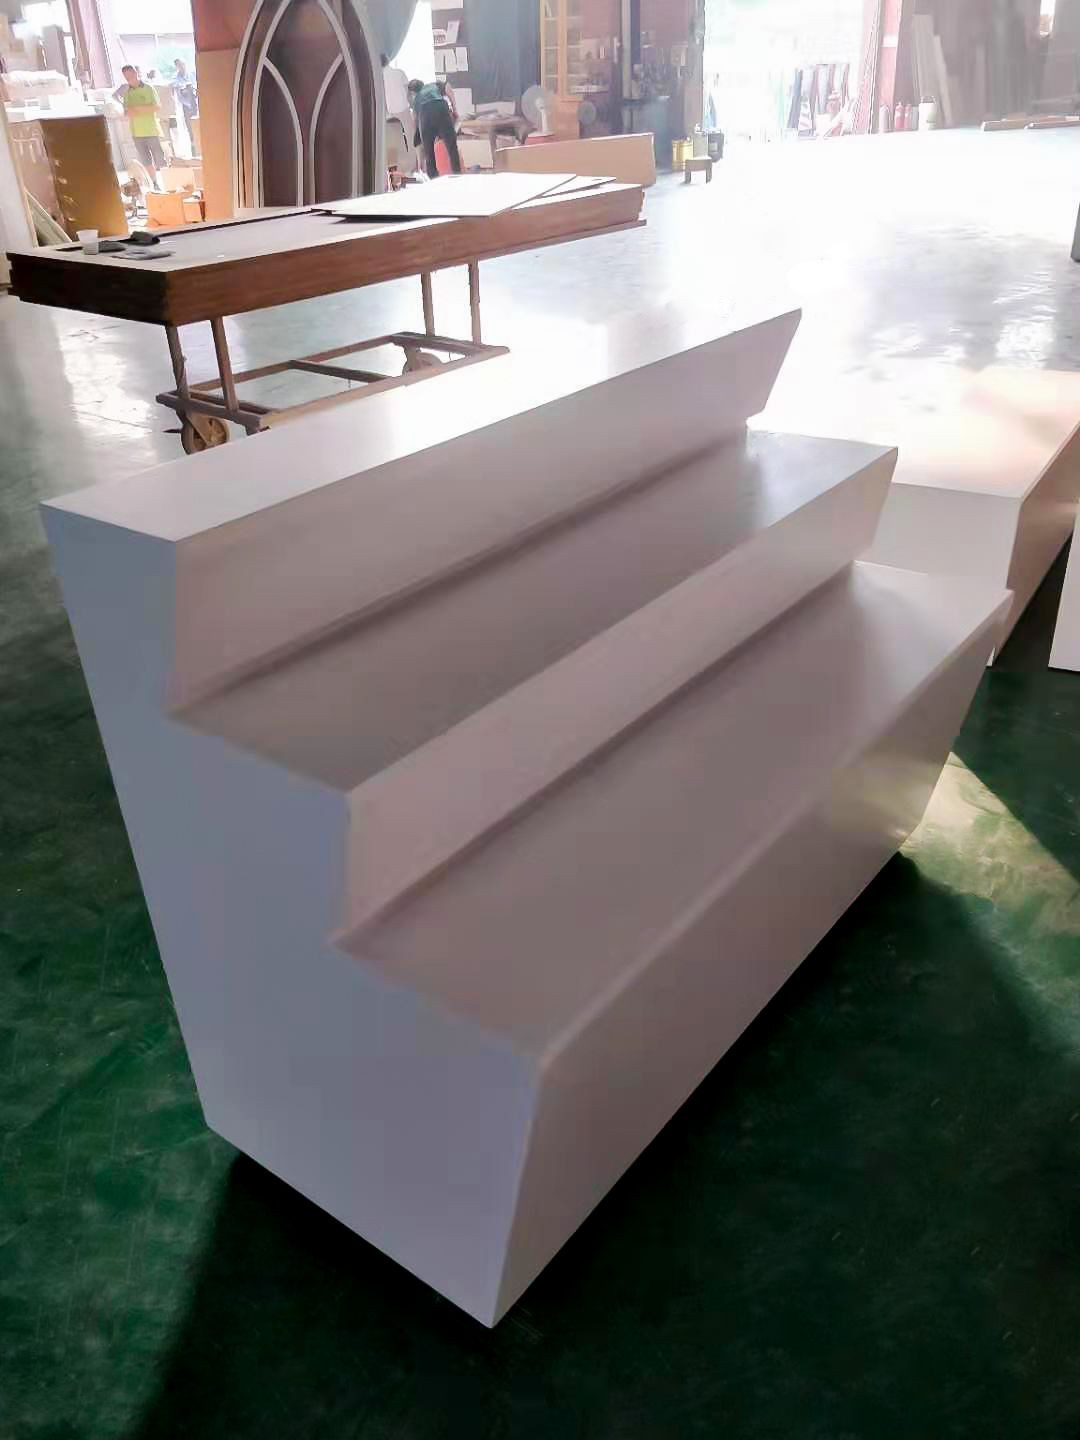 Wooden shop display stand